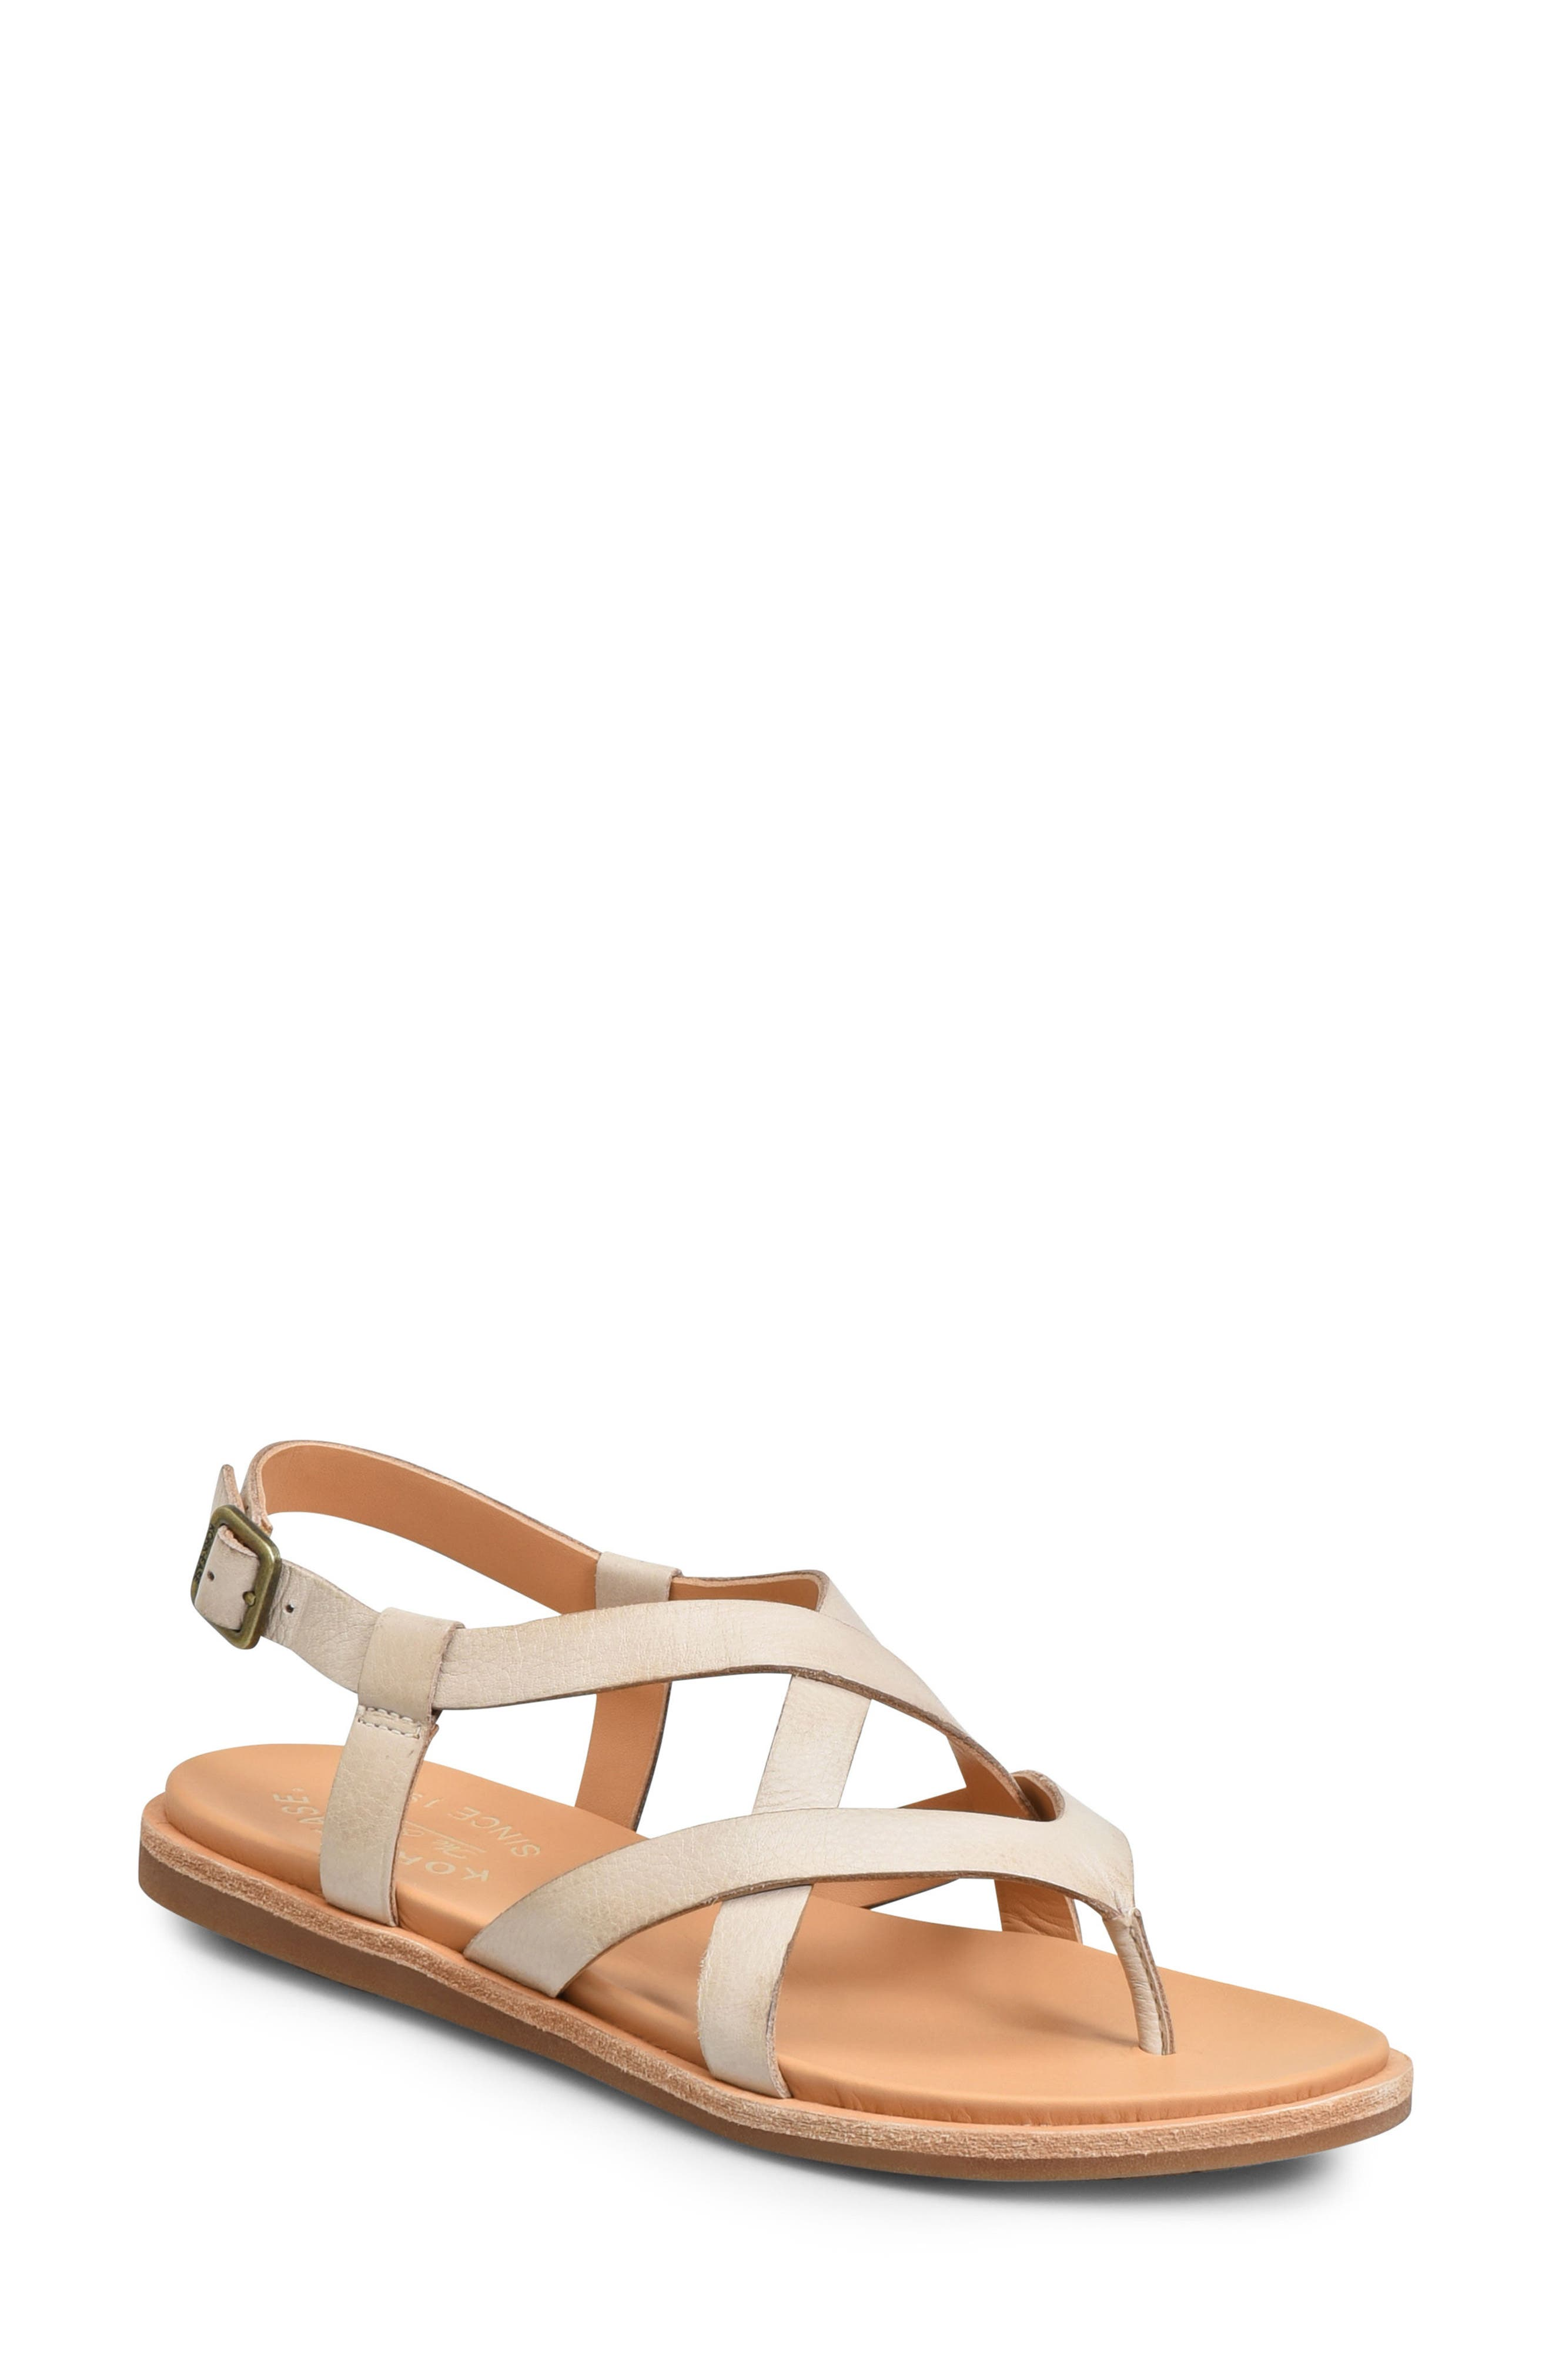 KORK-EASE<SUP>®</SUP>, Yarbrough Sandal, Main thumbnail 1, color, LIGHT GREY LEATHER